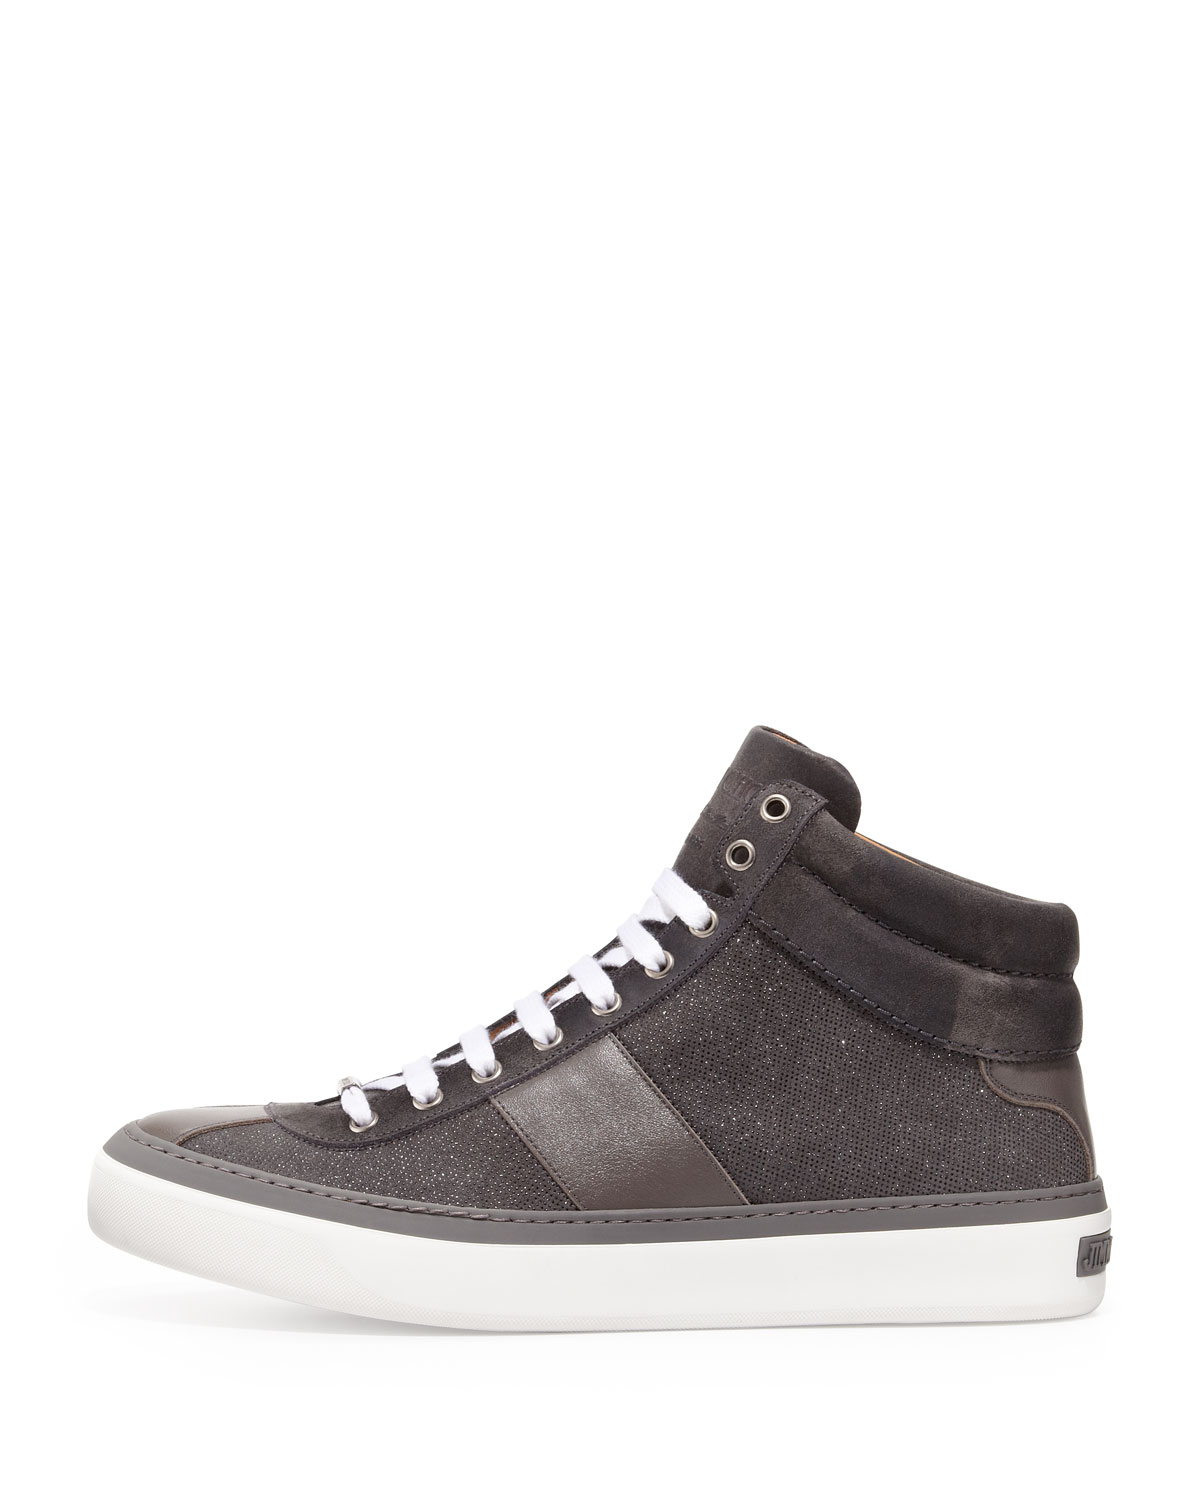 252a91f6ae4f Lyst - Jimmy Choo Belgravia Glitter-suede Hi-top Sneaker in Gray for Men